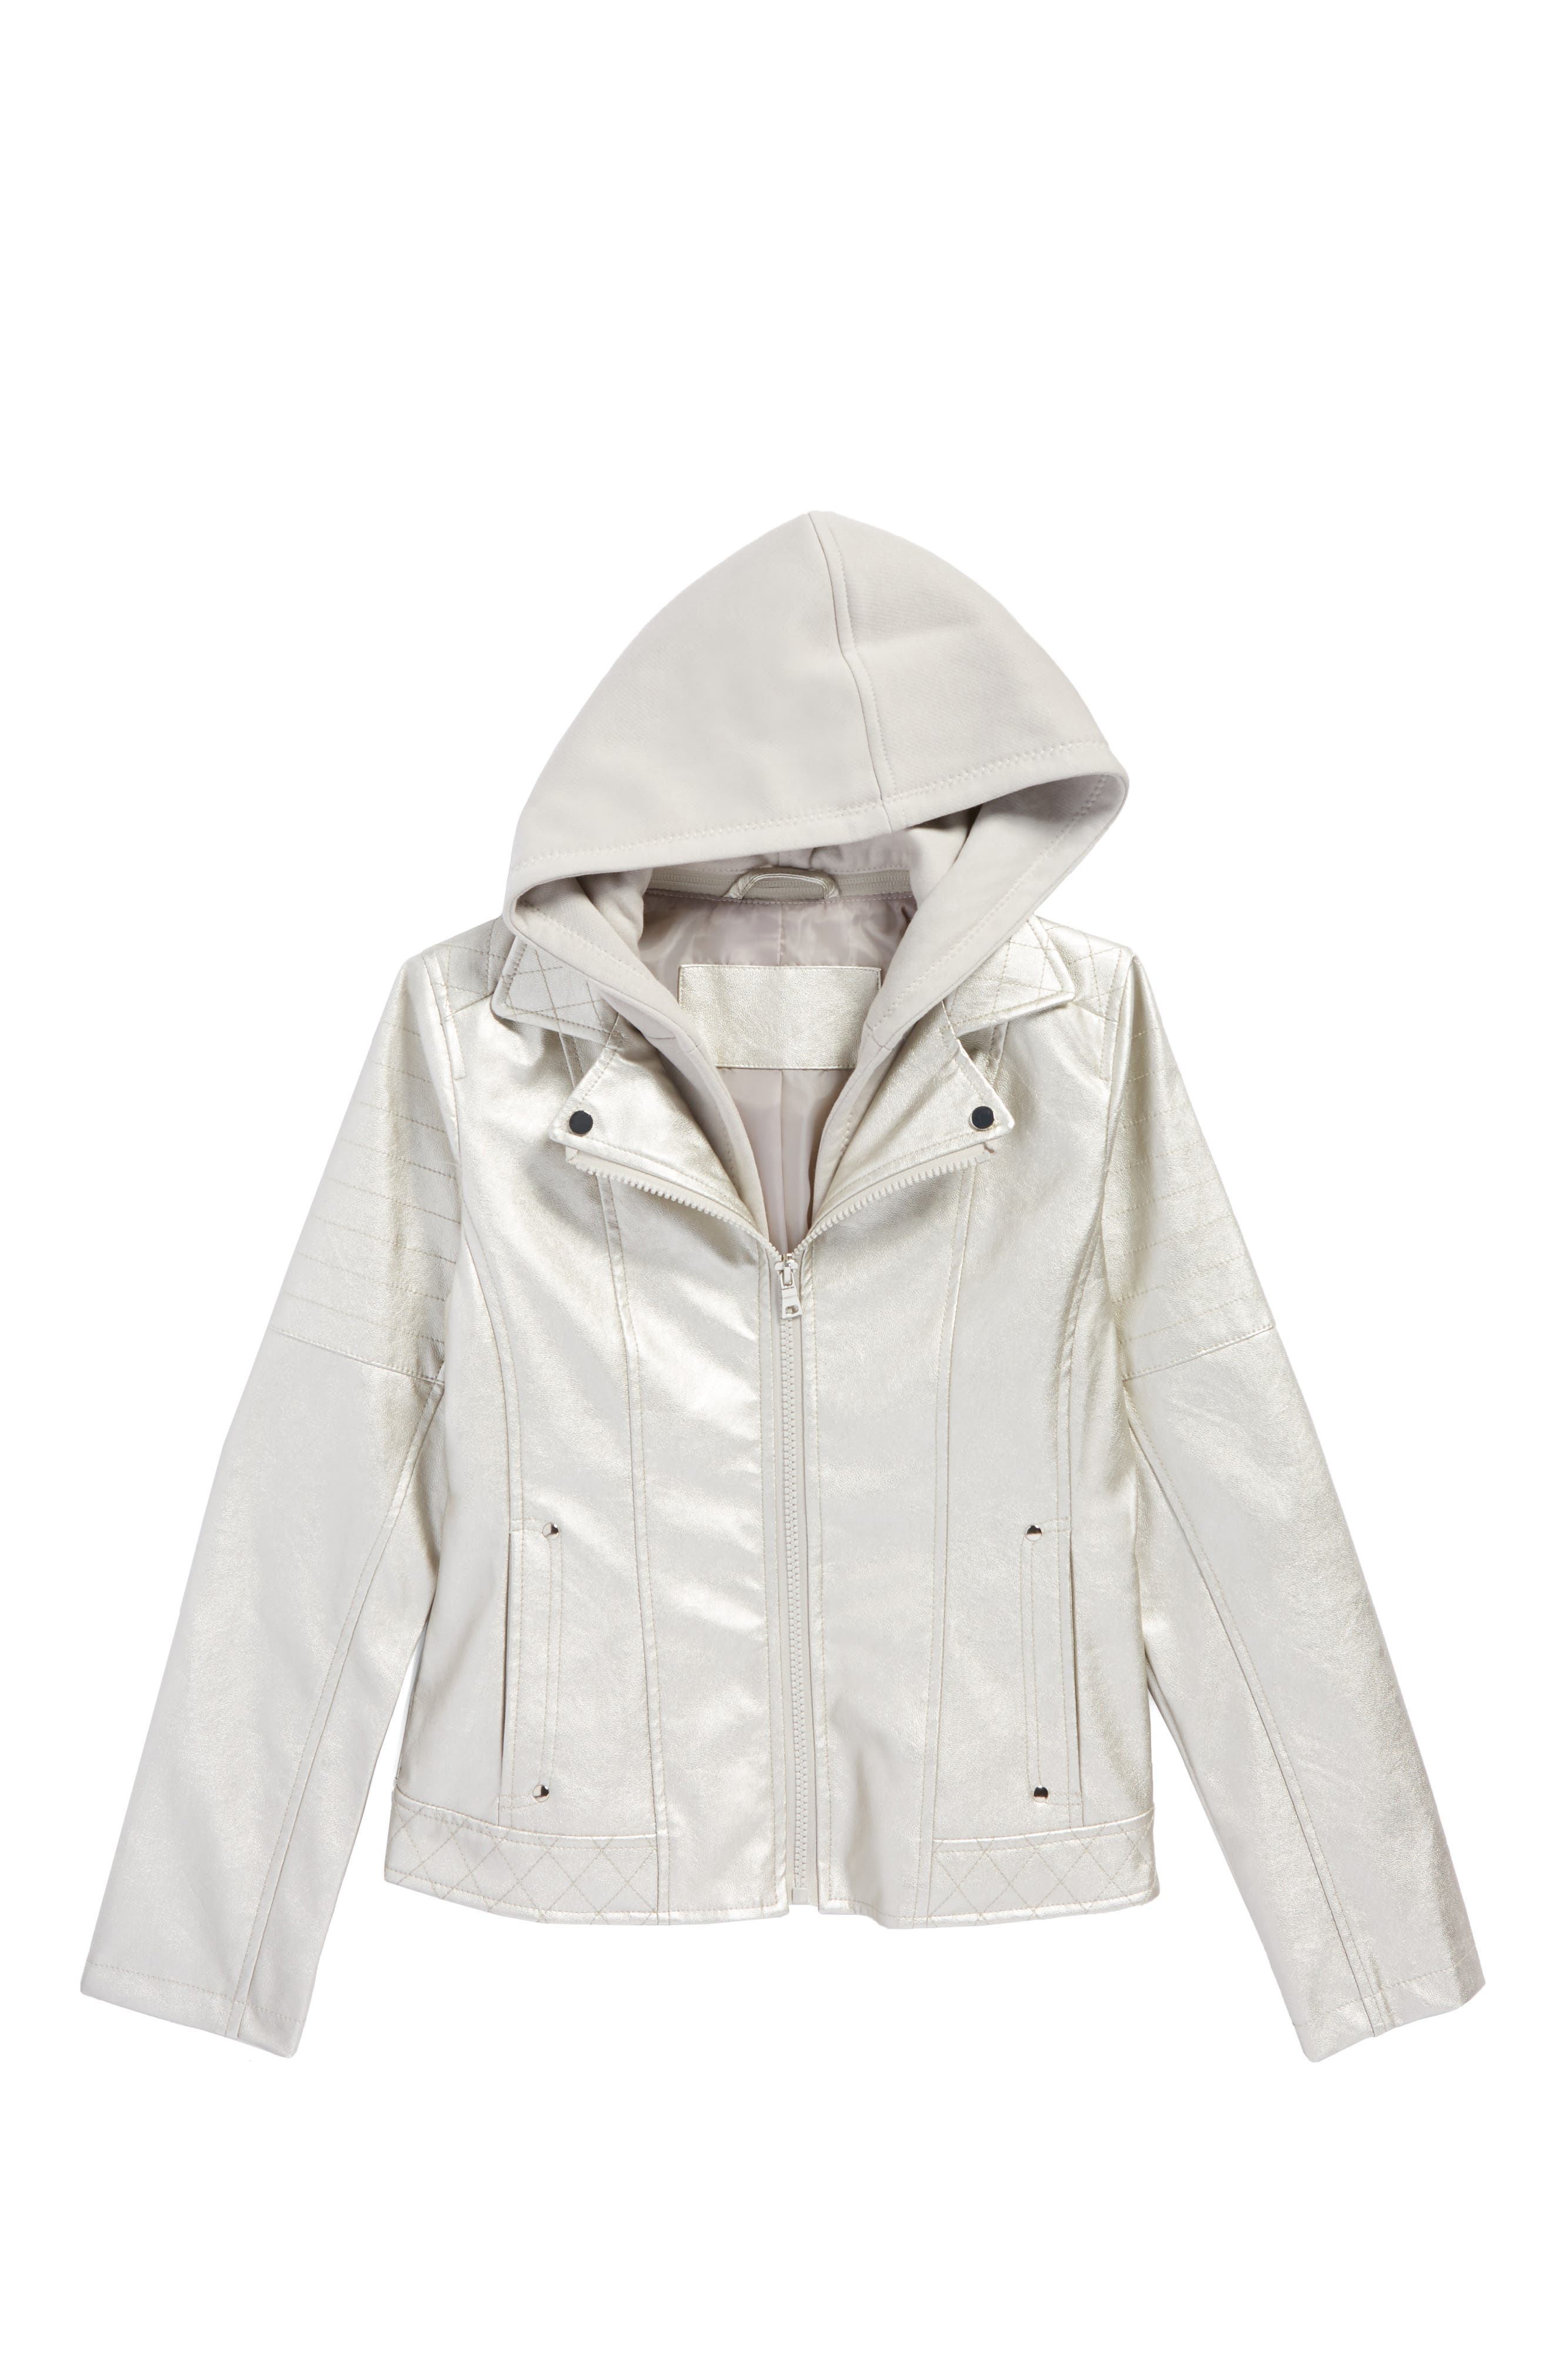 Alternate Image 1 Selected - Gallery Faux Leather Hooded Jacket (Big Girls)